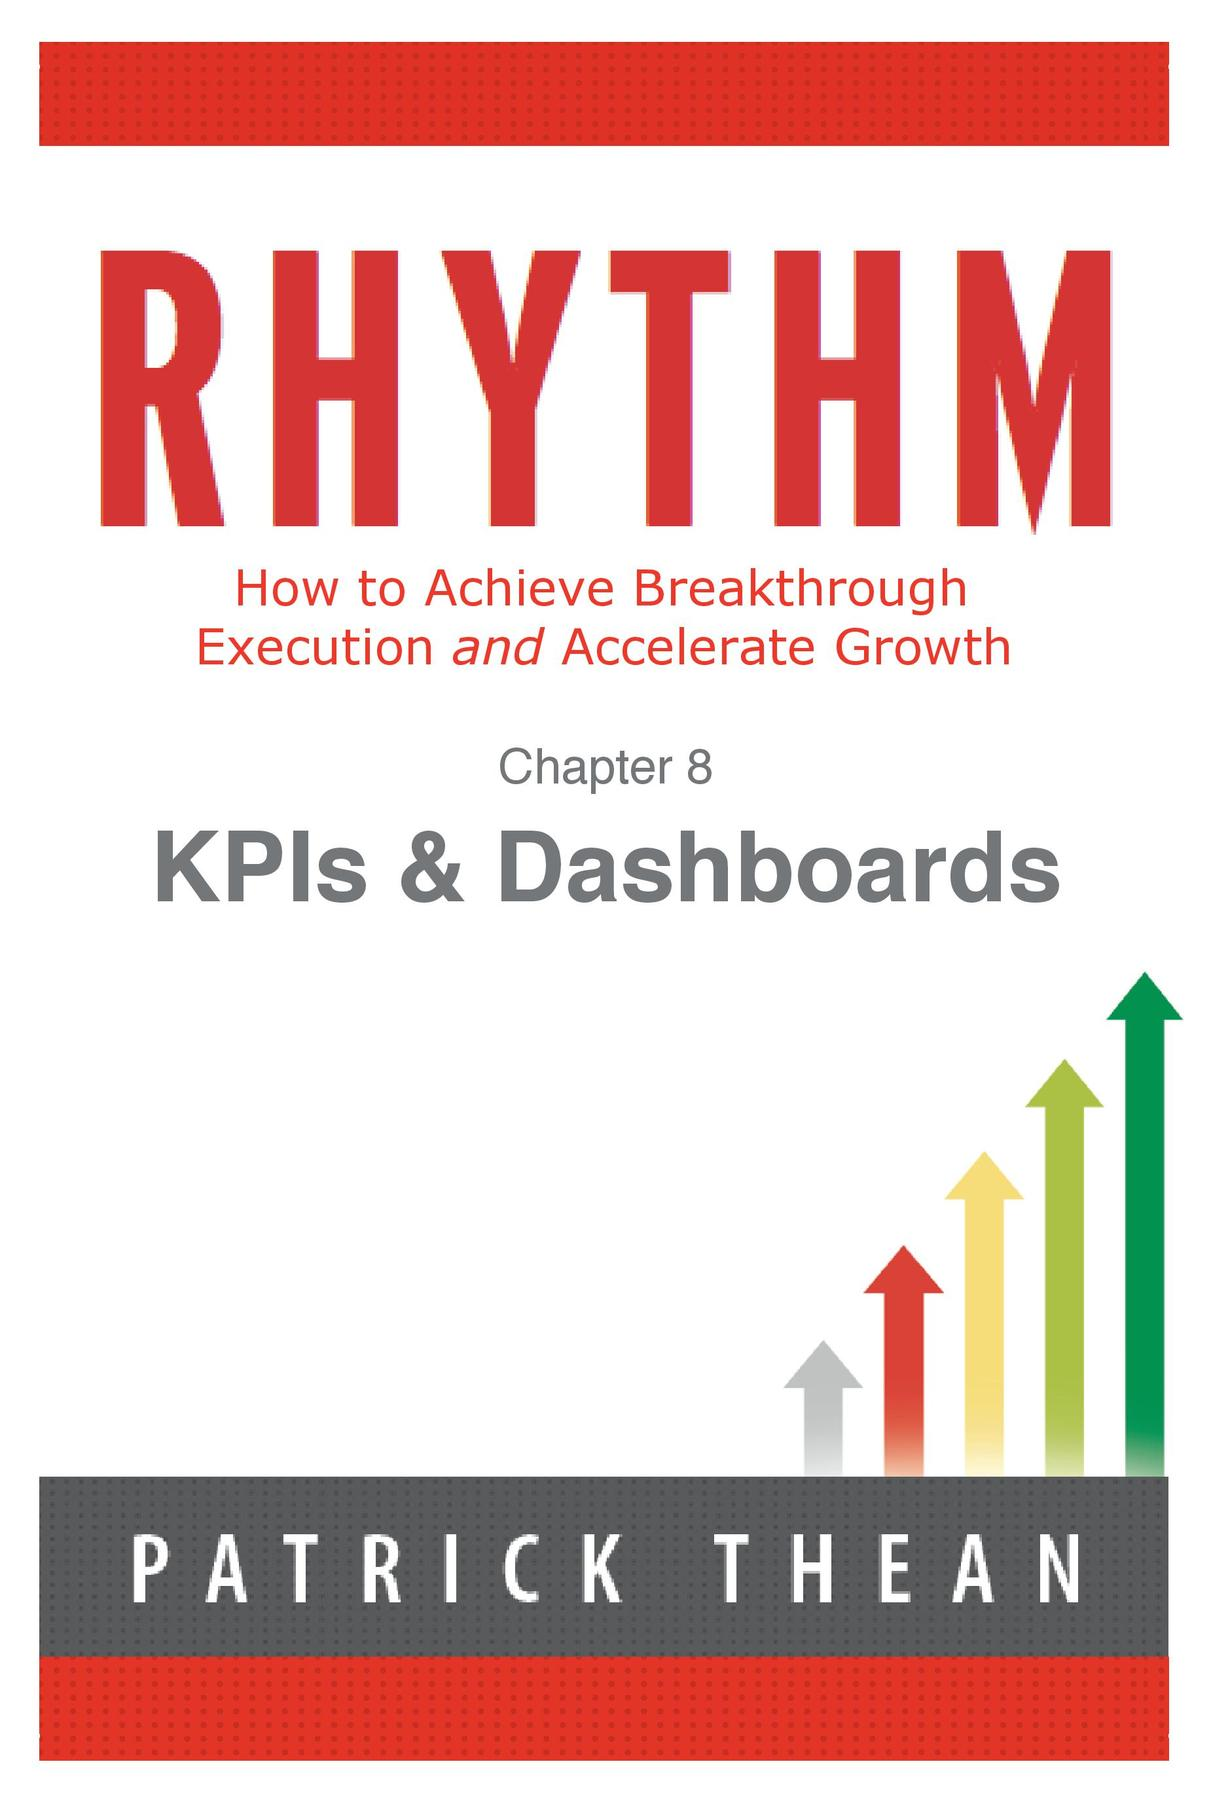 Chapter 8: KPIs & Dashboards